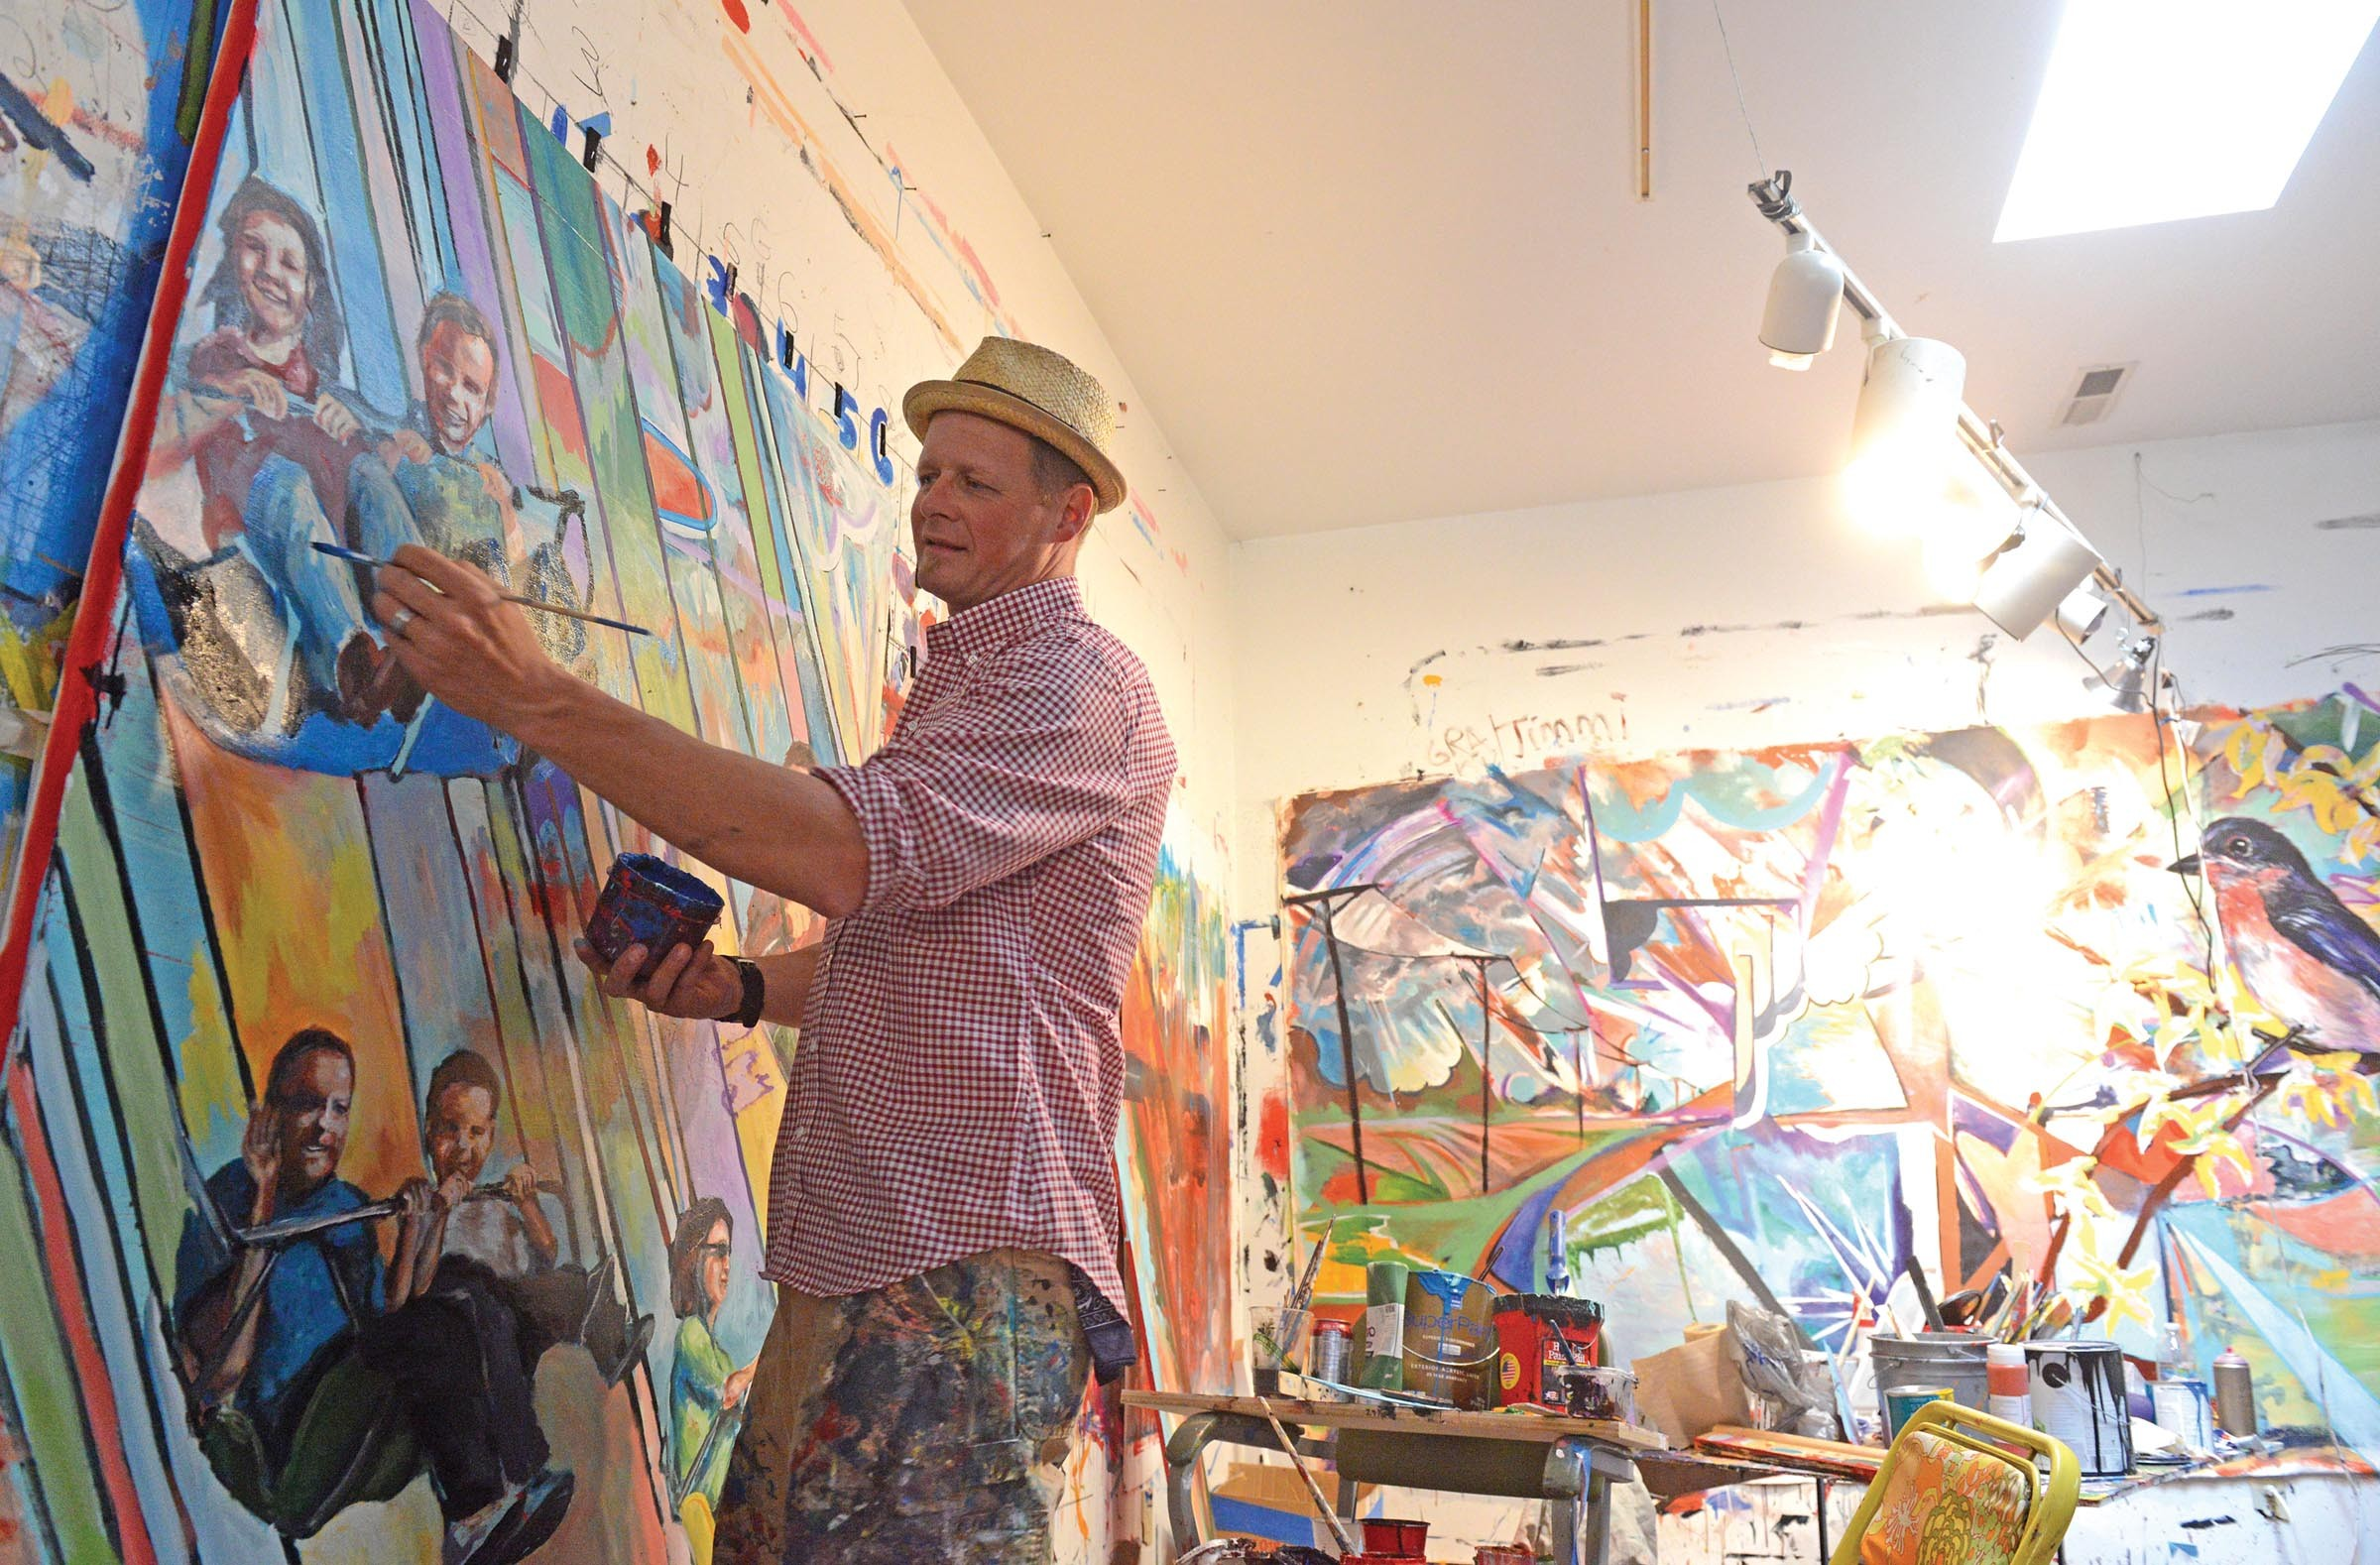 The walls of Trask's studio are covered by work in various stages of completion. - SCOTT ELMQUIST